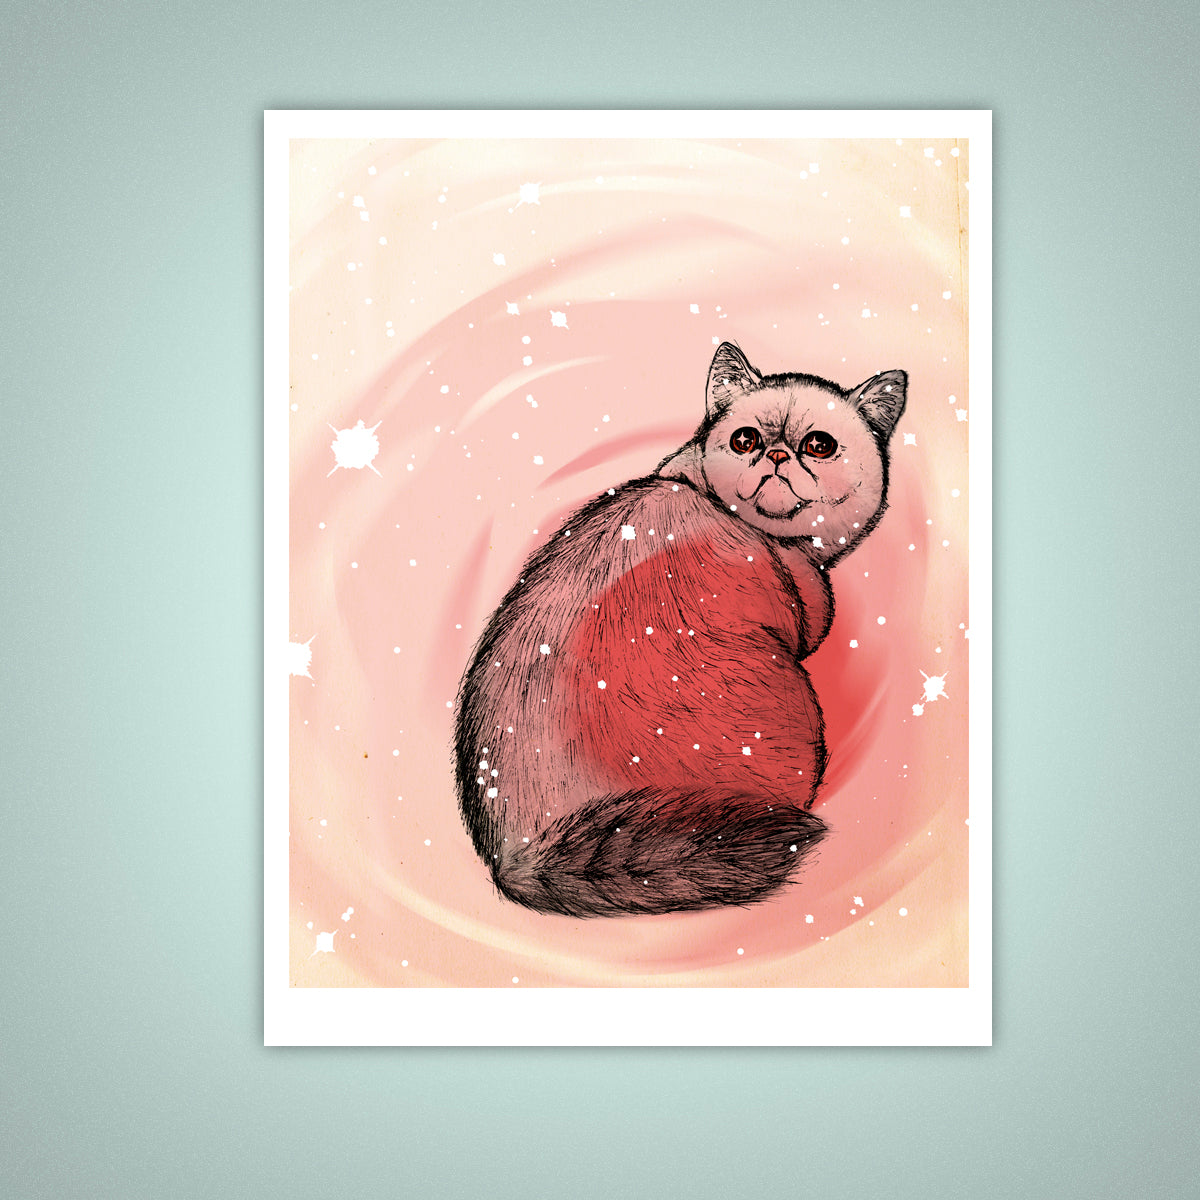 Trippy Exotic Shorthair Cat Giclee Illustration Print, Wall Art - Yay for Fidget Art!